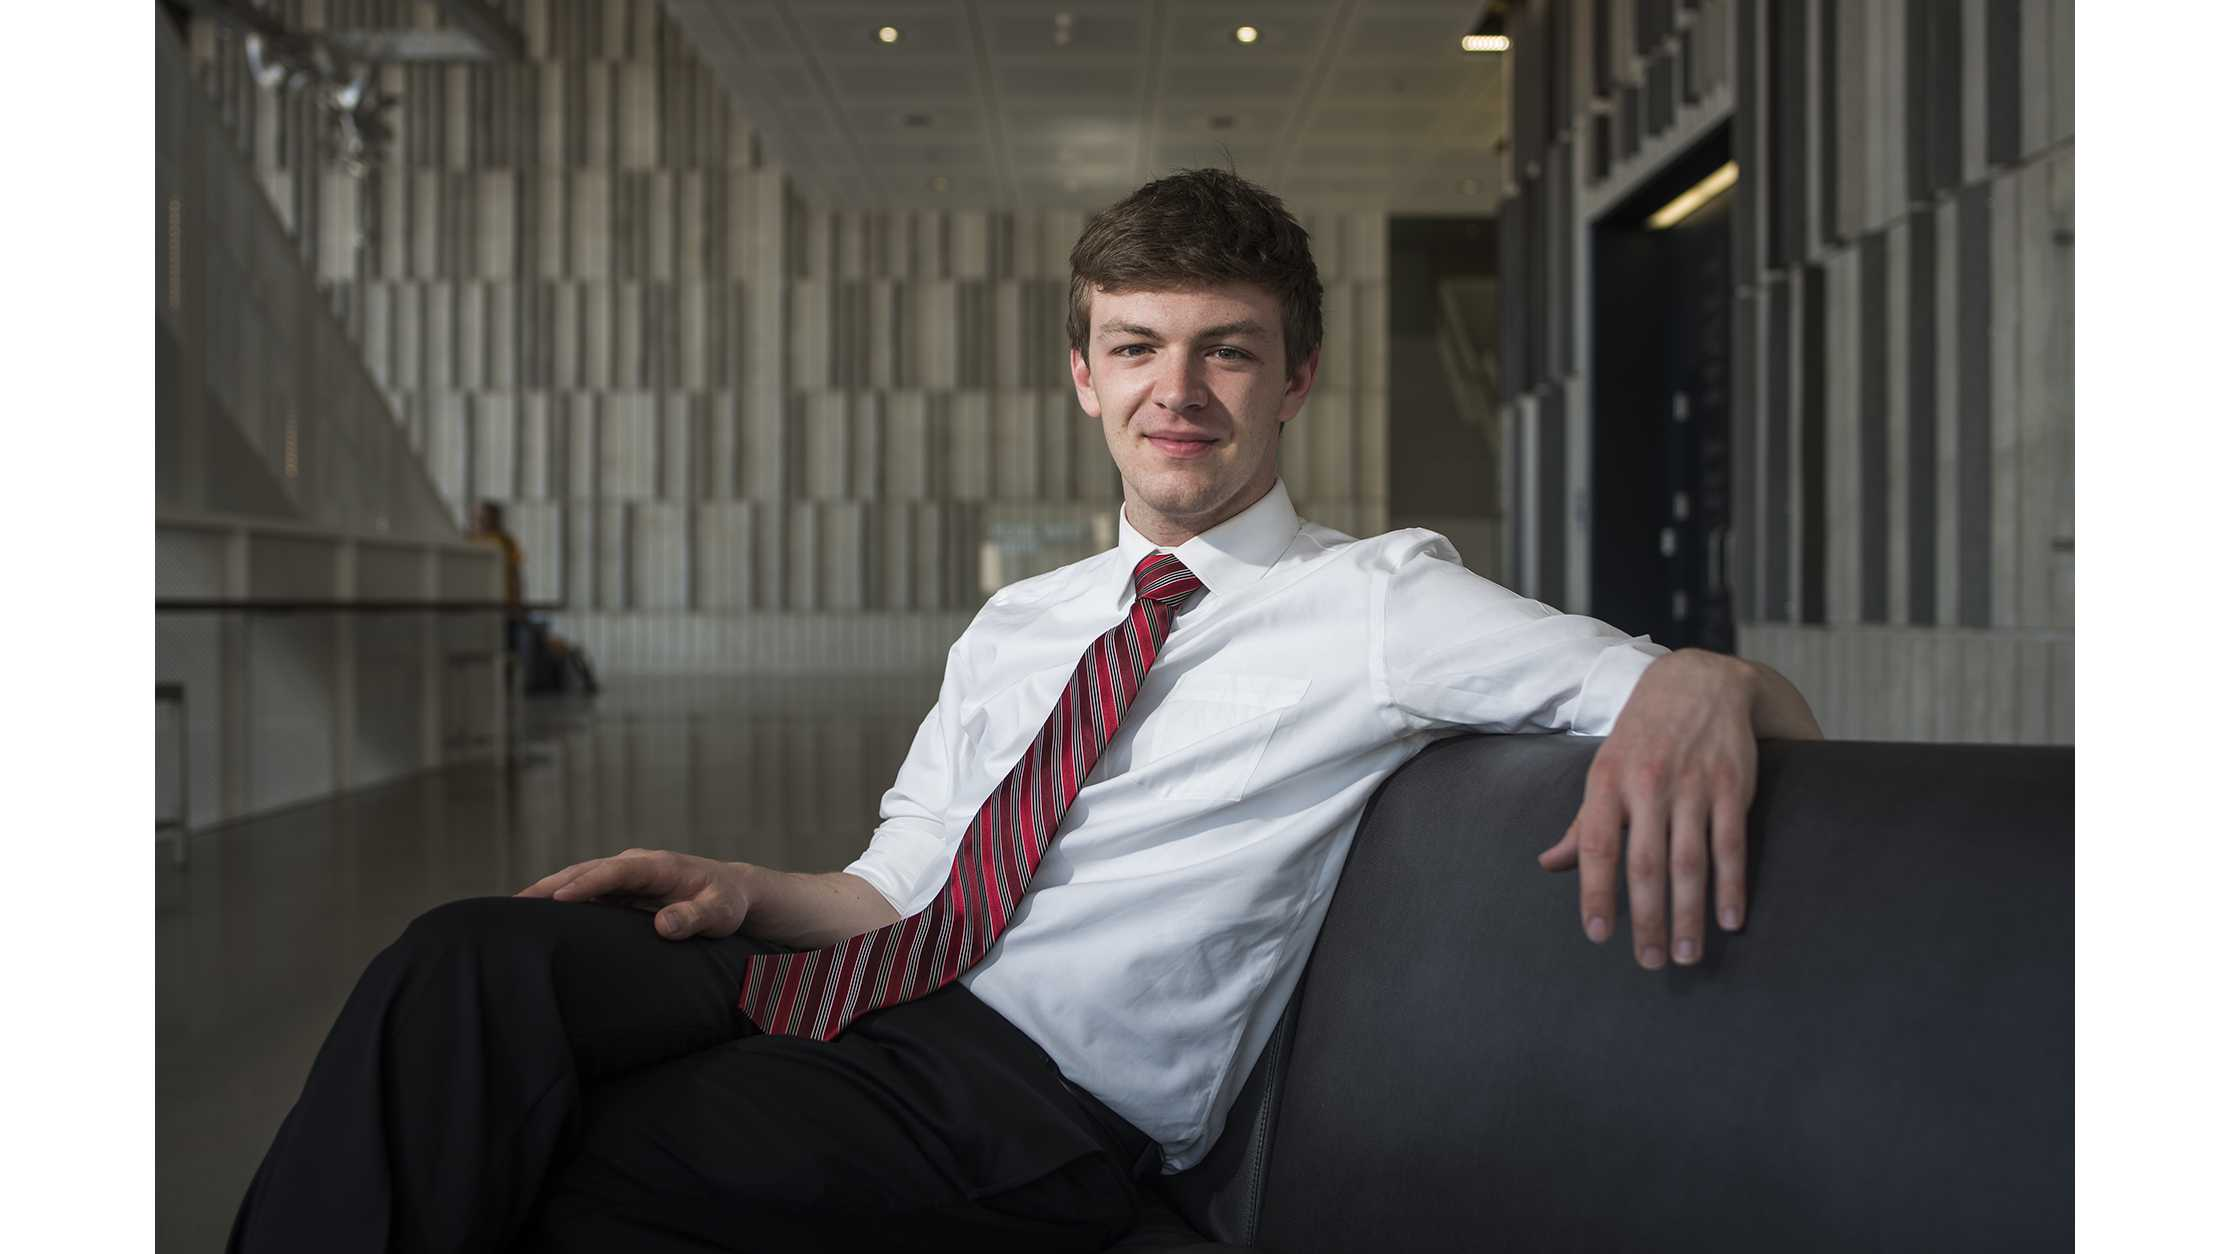 UI senior Jacob Simpson poses for a portrait in the Voxman Music Building on Monday, May 7, 2018. Simpson is the former president of UISG and will be leaving his post following graduation. (Ben Allan Smith/The Daily Iowan)